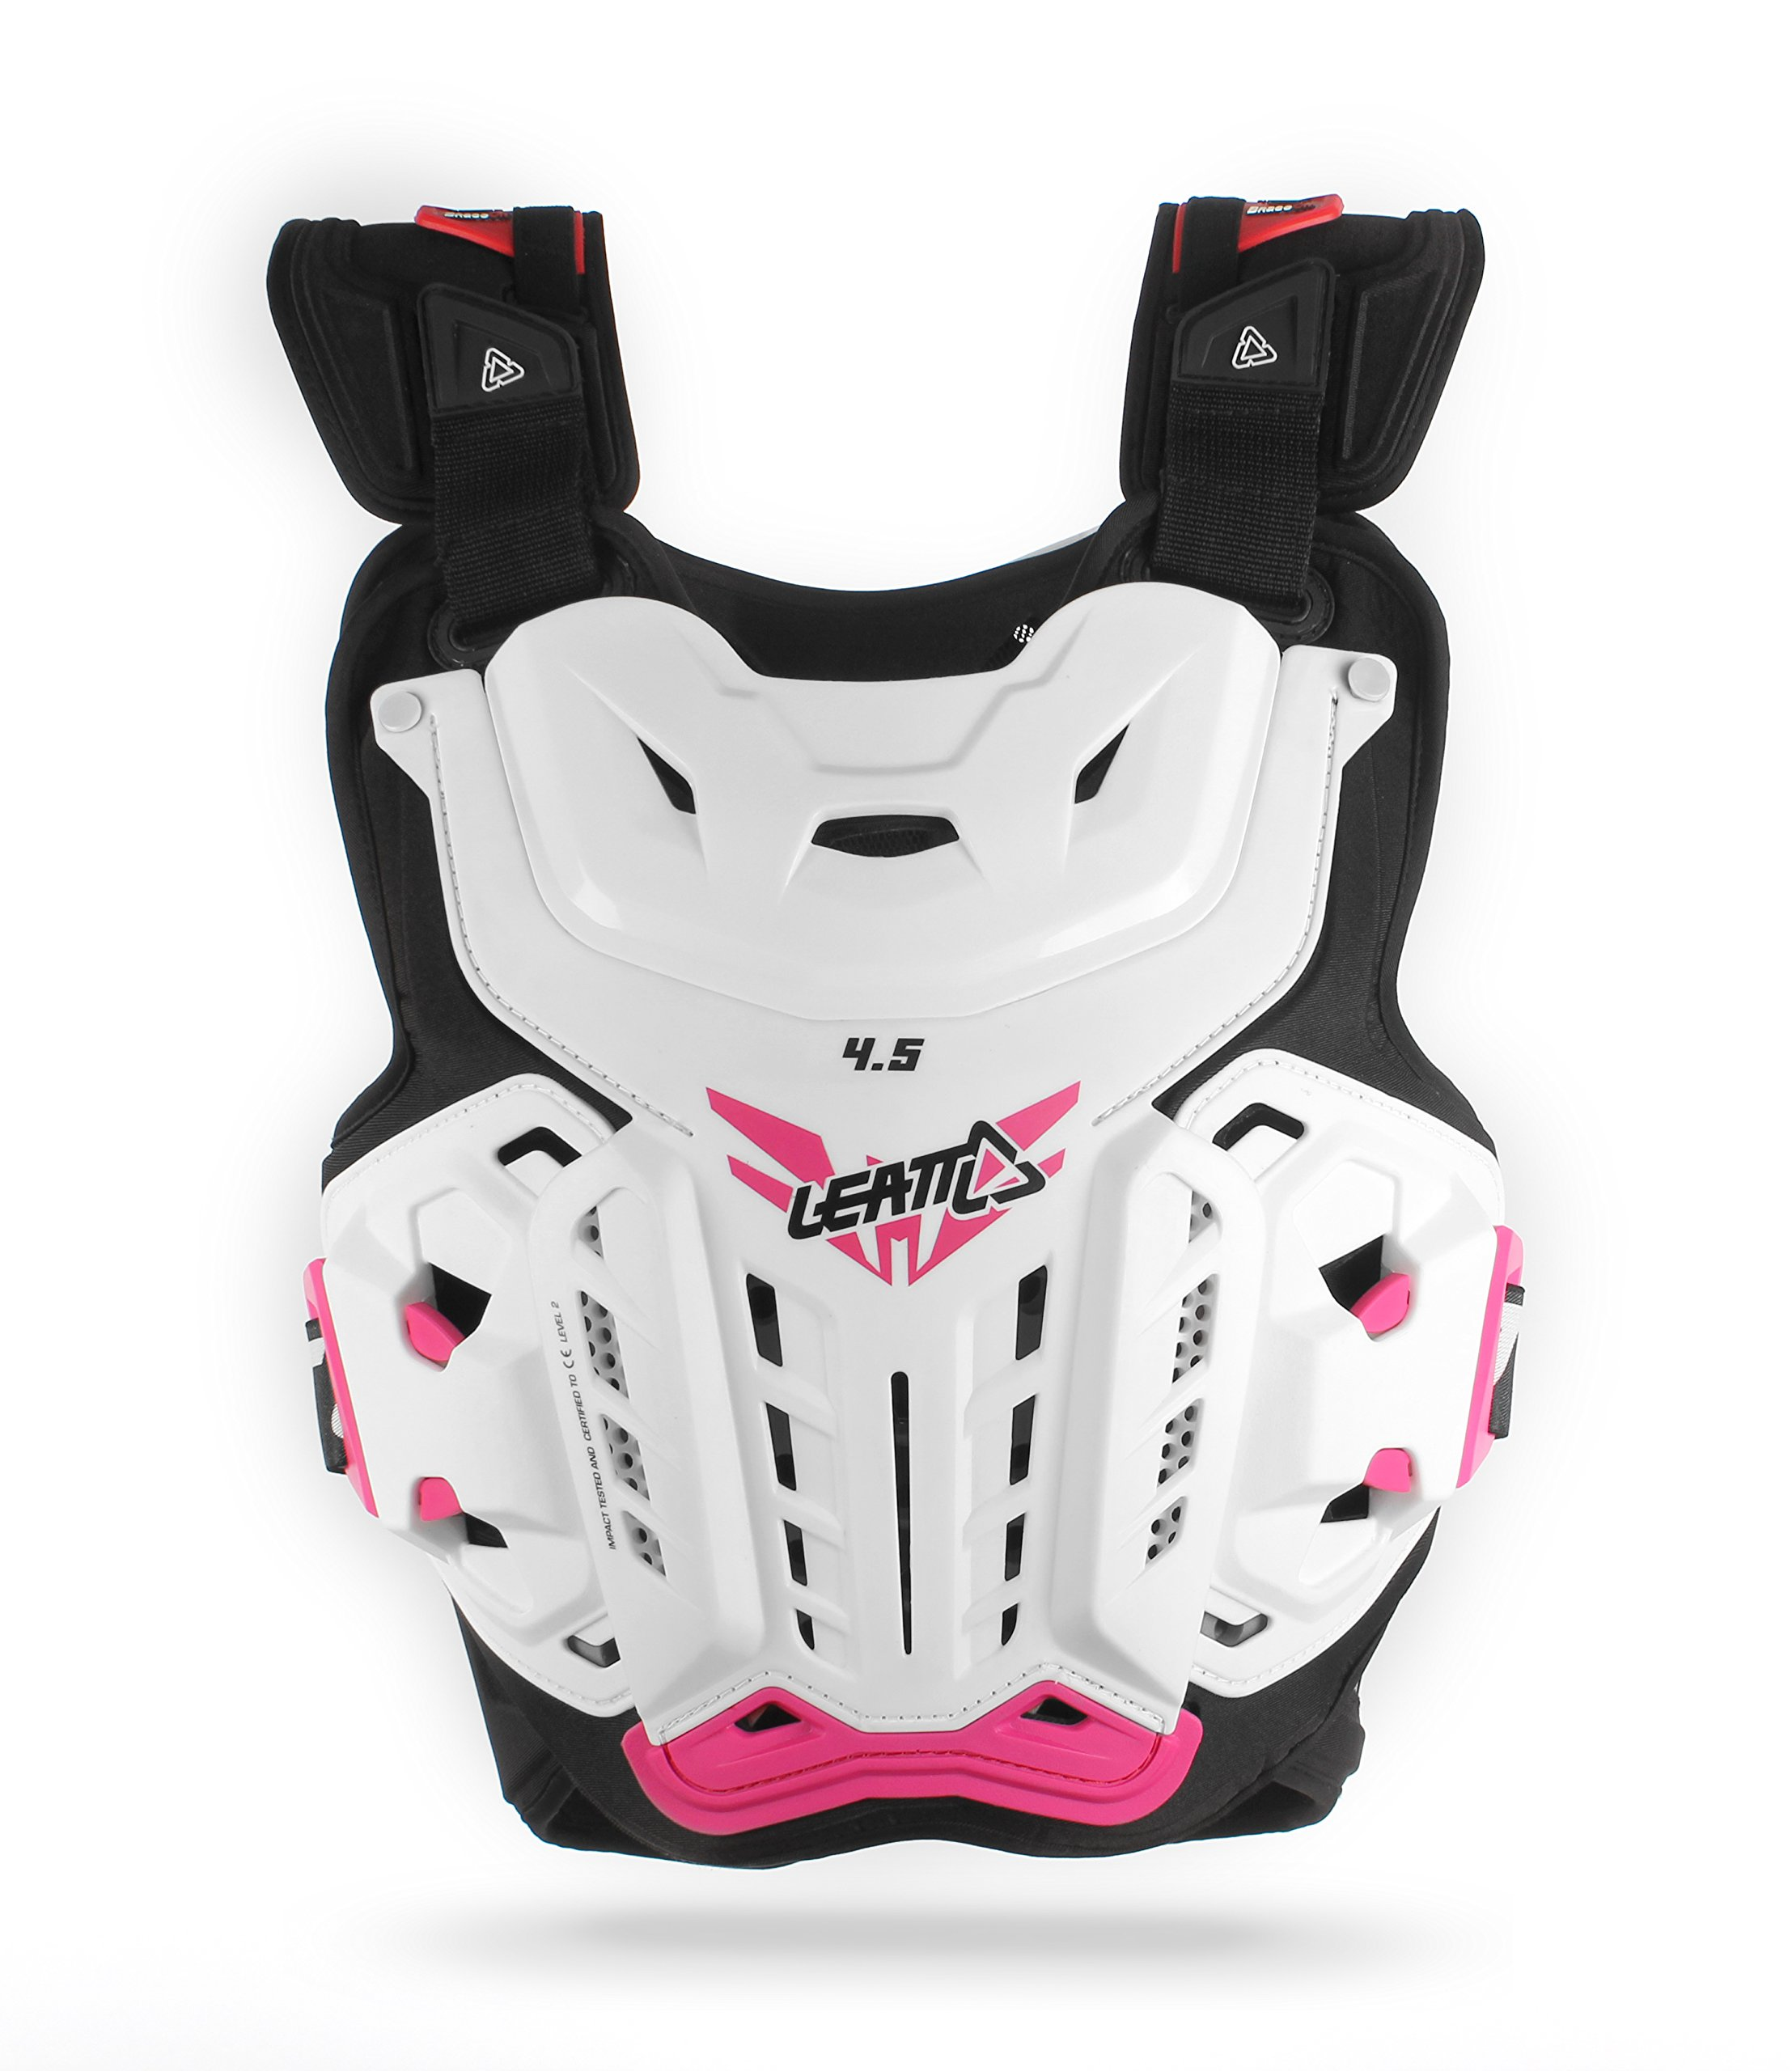 Leatt 4.5 Jacki Chest Protector (White/Pink, One Size)